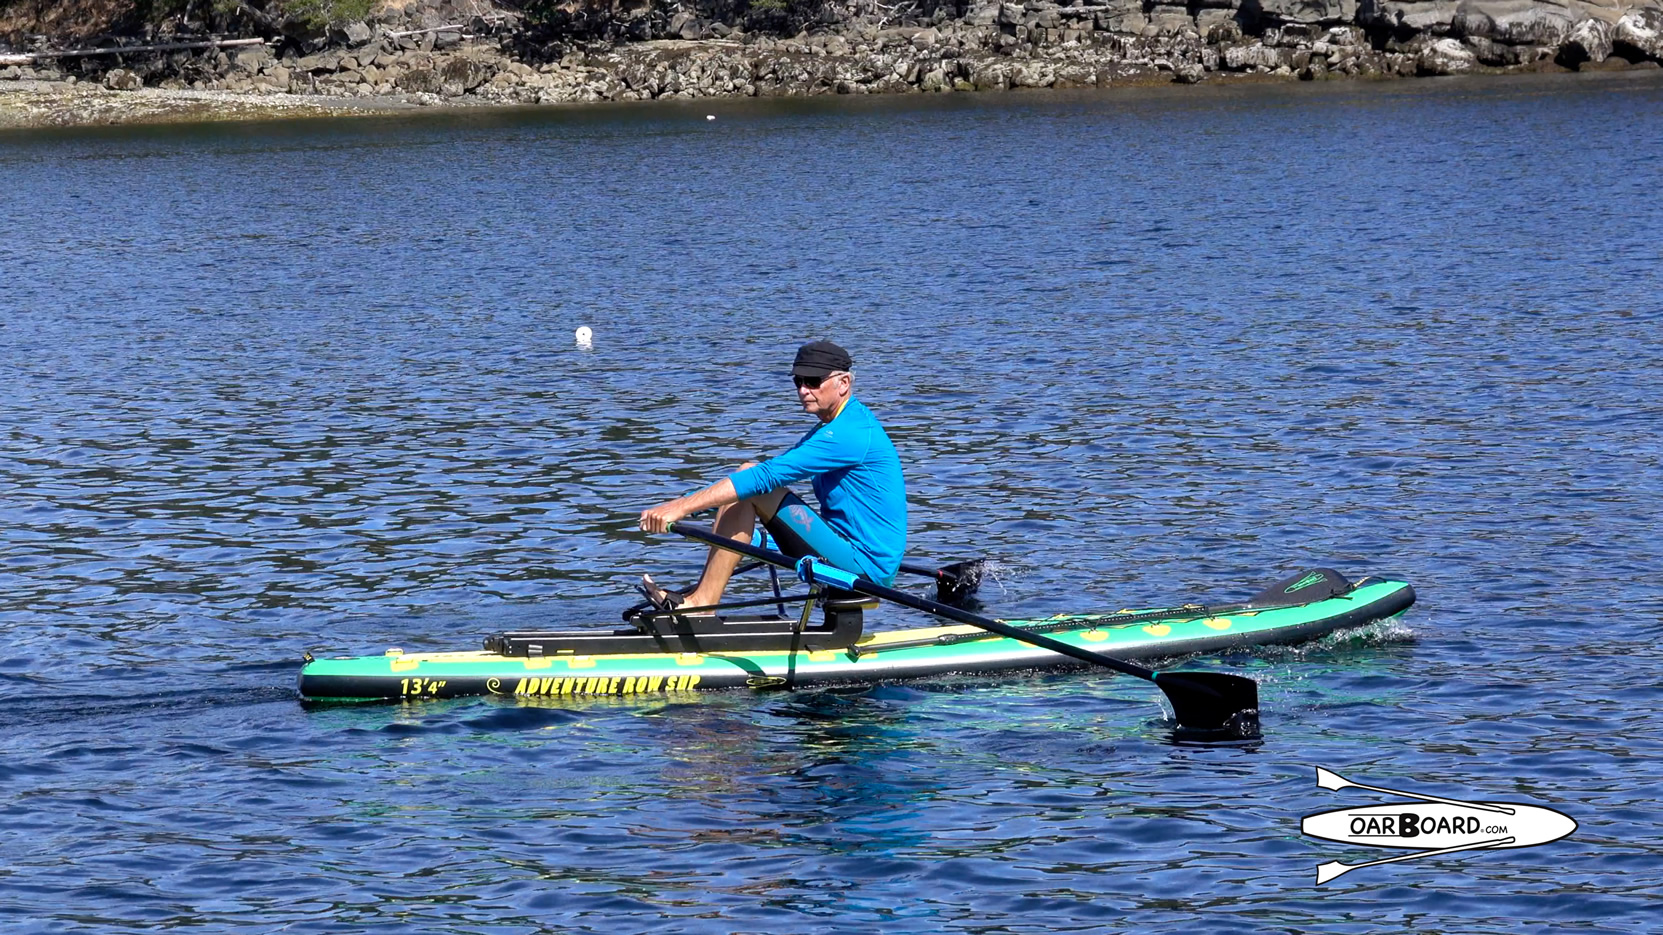 Silva-Bay-Harold-Aune-9-Oar-Board-Stand-Up-Paddle-Board-Rower-Whitehall-Rowing-and-Sail